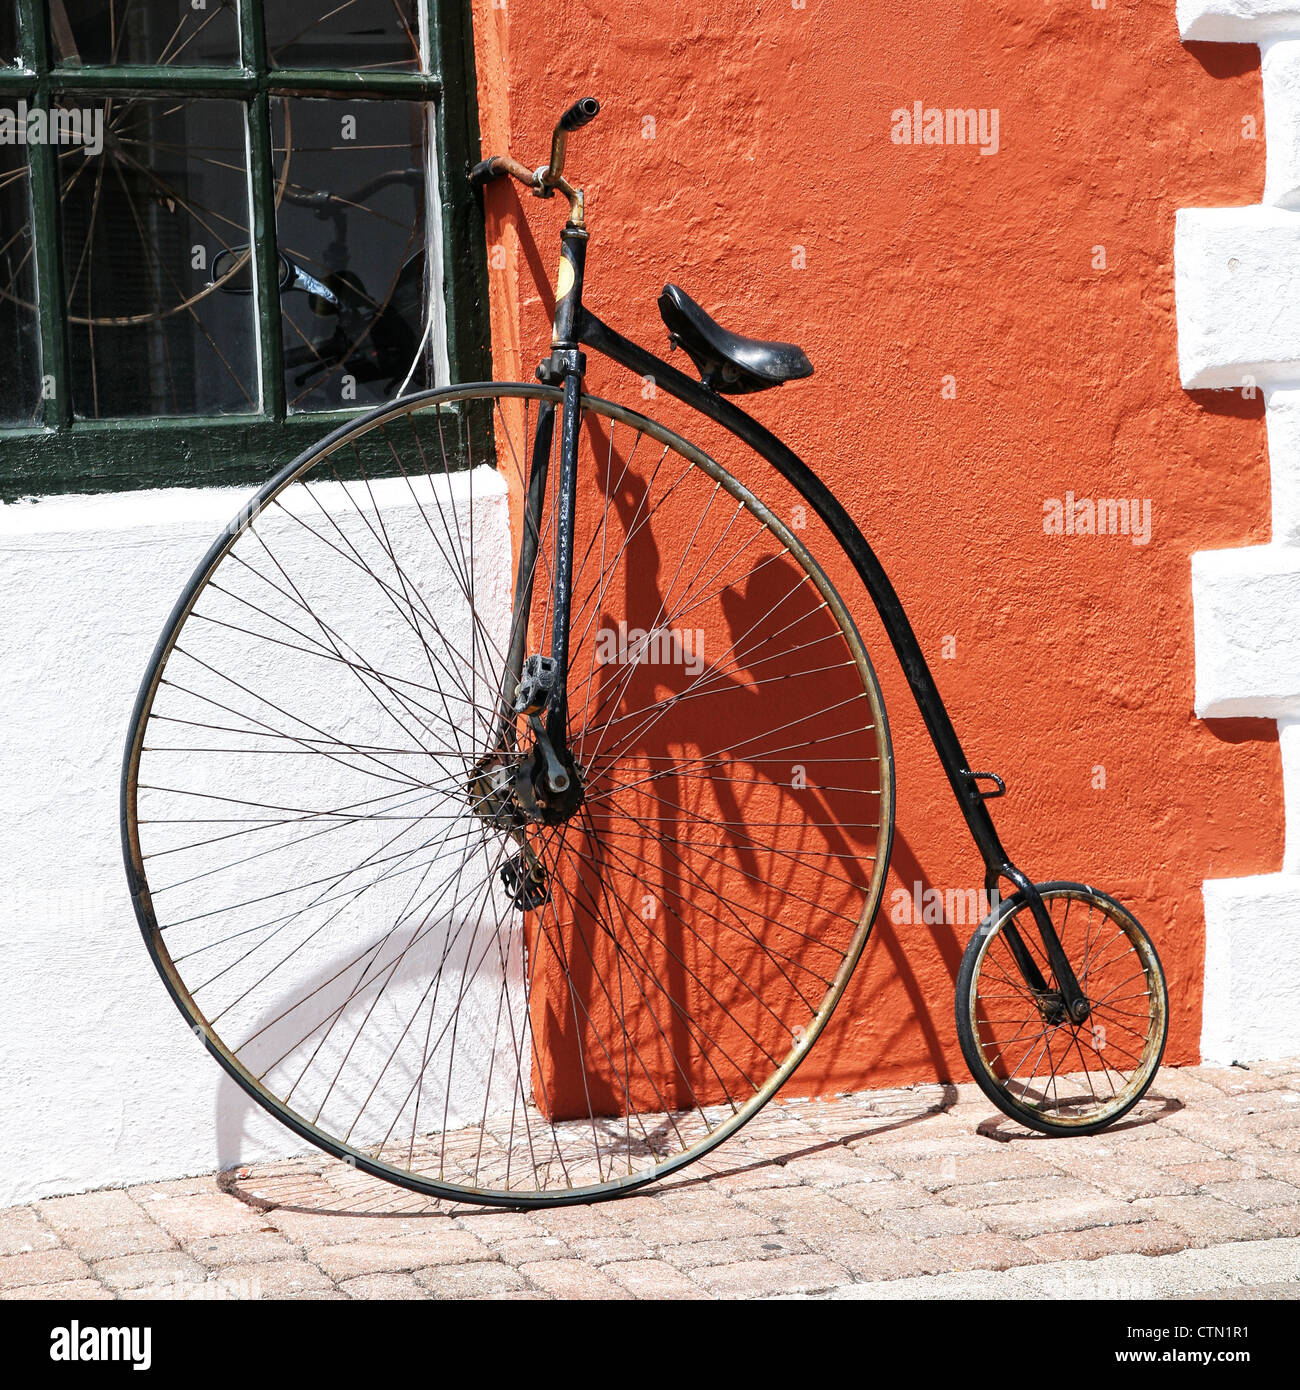 An antique bicycle leaning up against the stucco wall of a building in Bermuda. - Stock Image